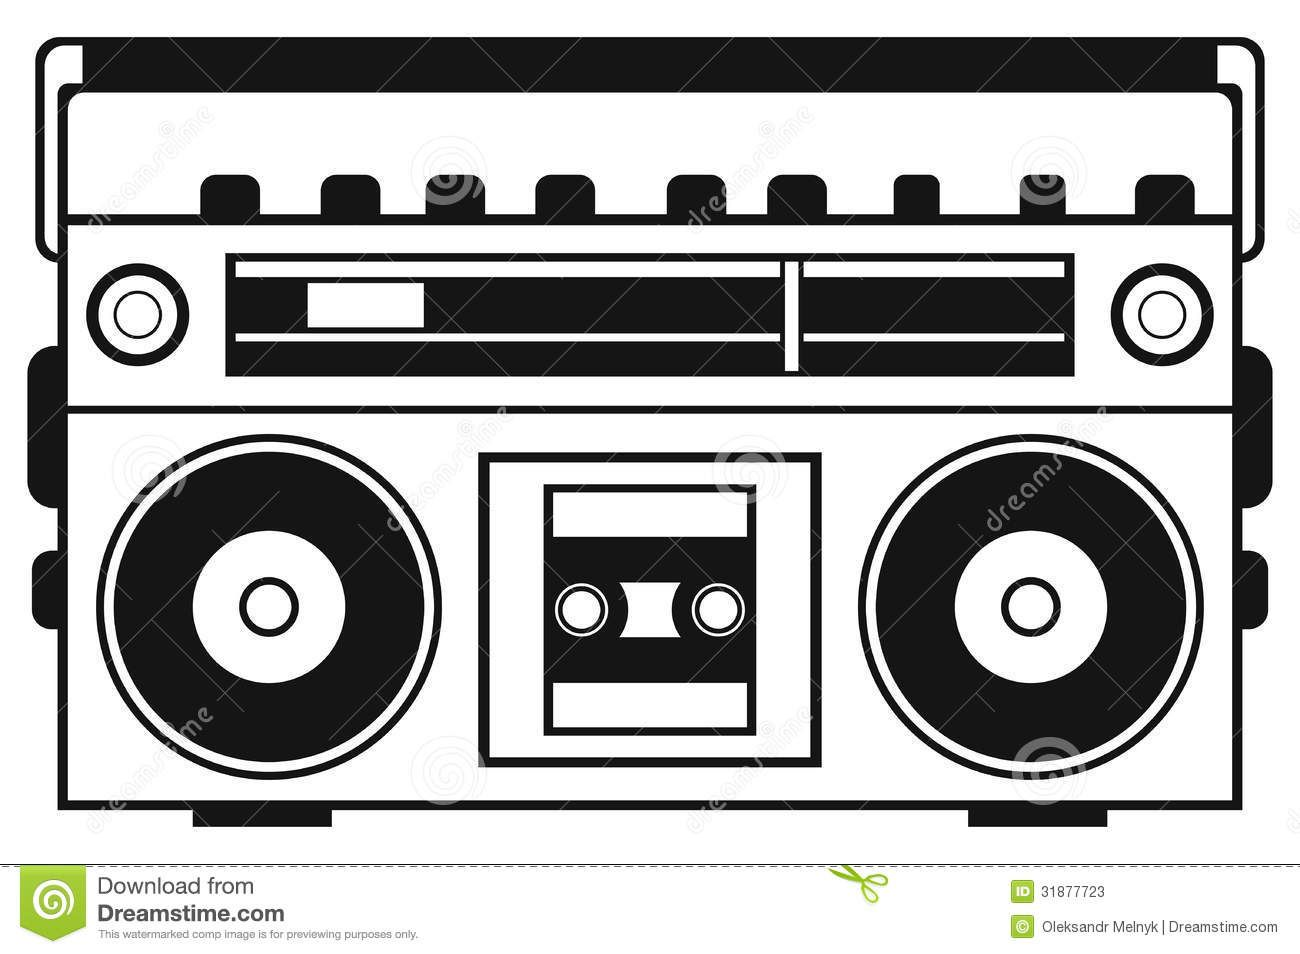 Boombox Clipart Repinlikeview Pic | PTA in 2019 | Boombox, Drawings, Art svg transparent stock